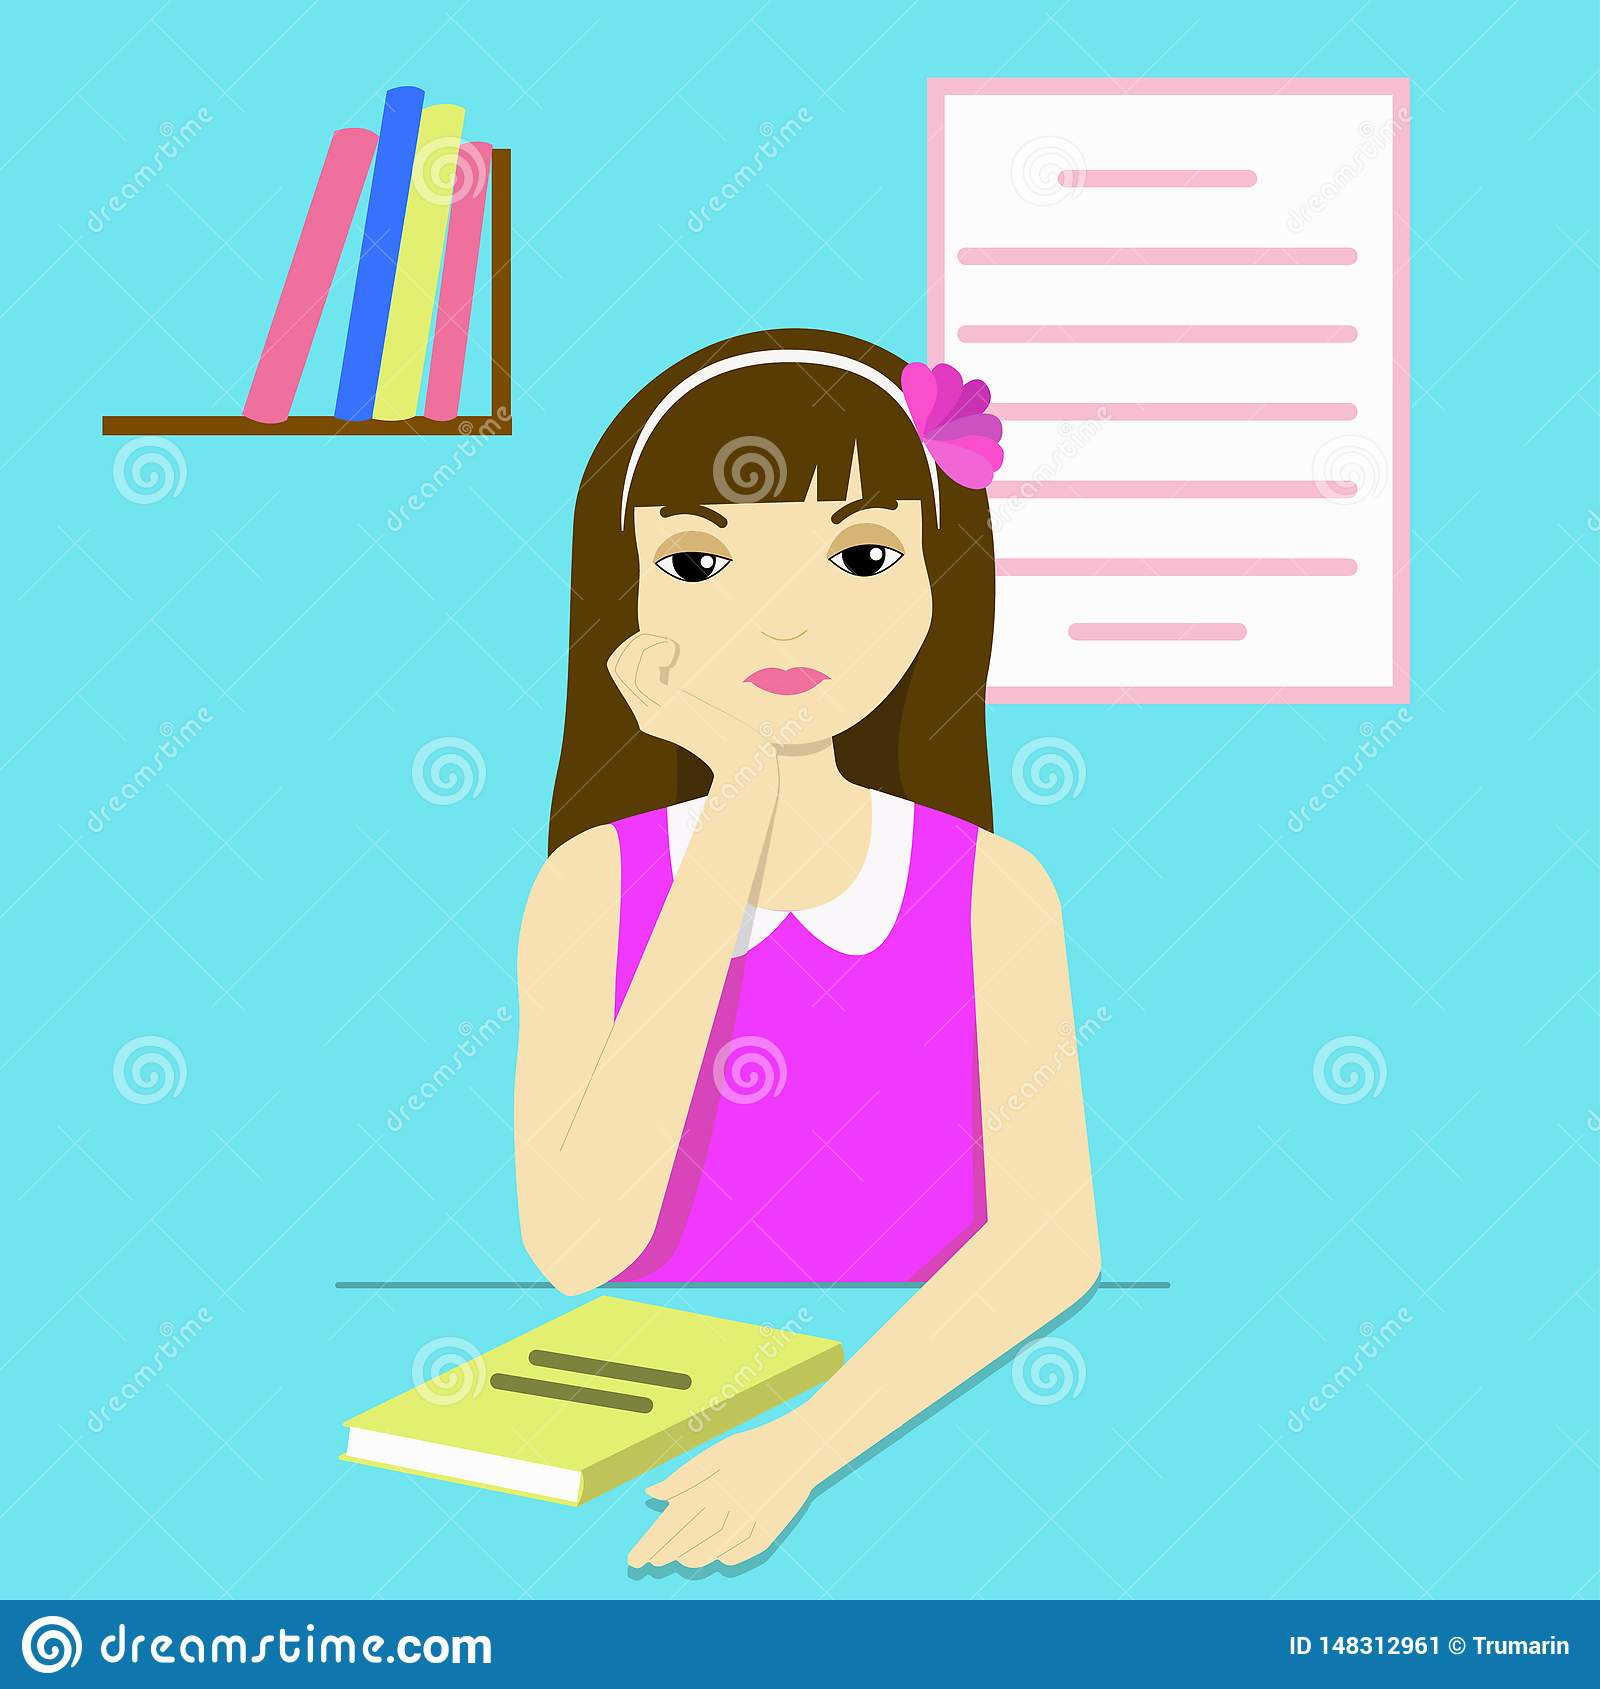 Thoughtful girl at her desk